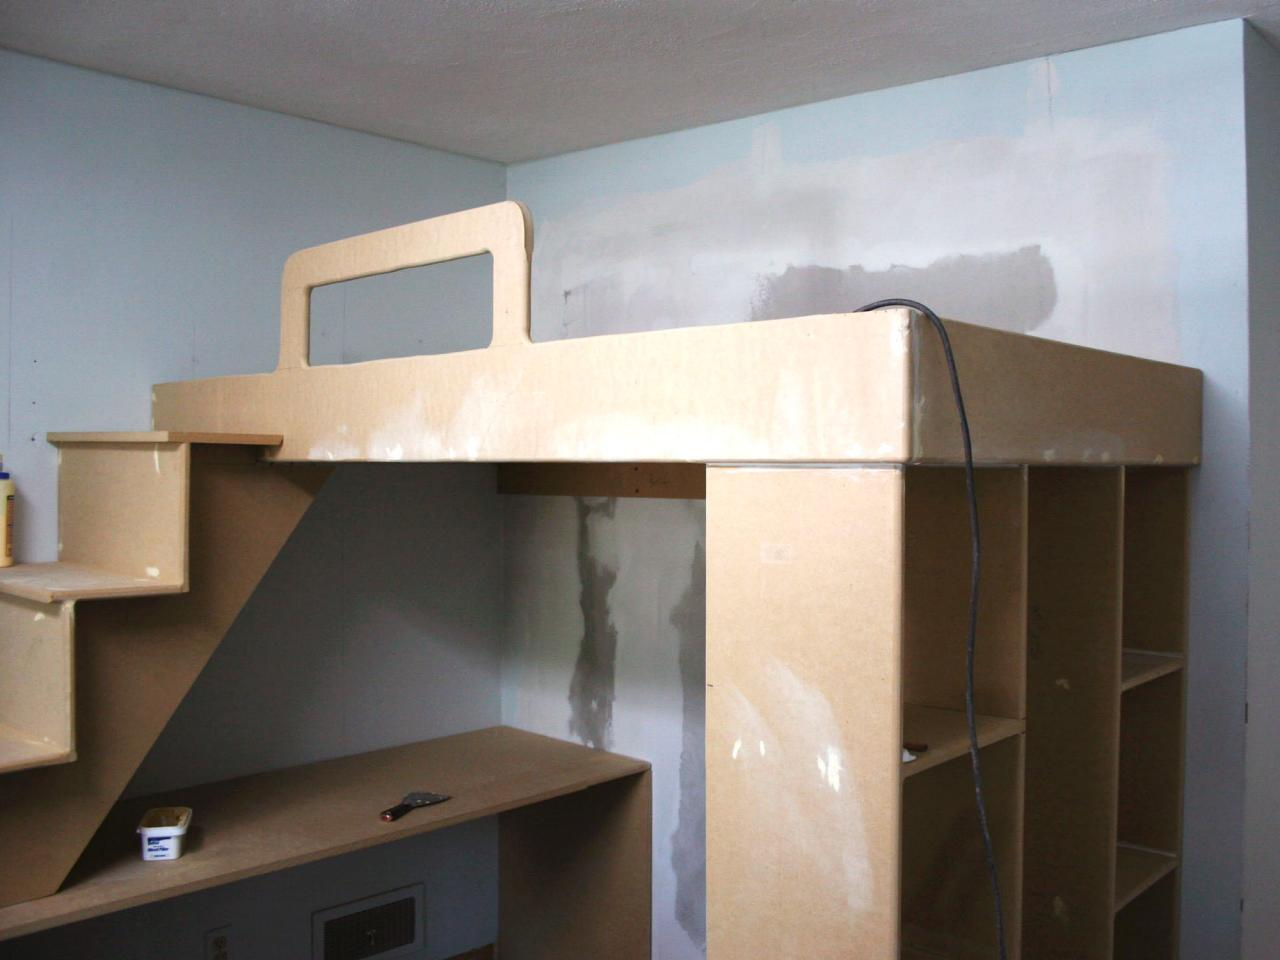 How to Build a Loft Bed With a Desk Underneath | Bedrooms & Bedroom ...